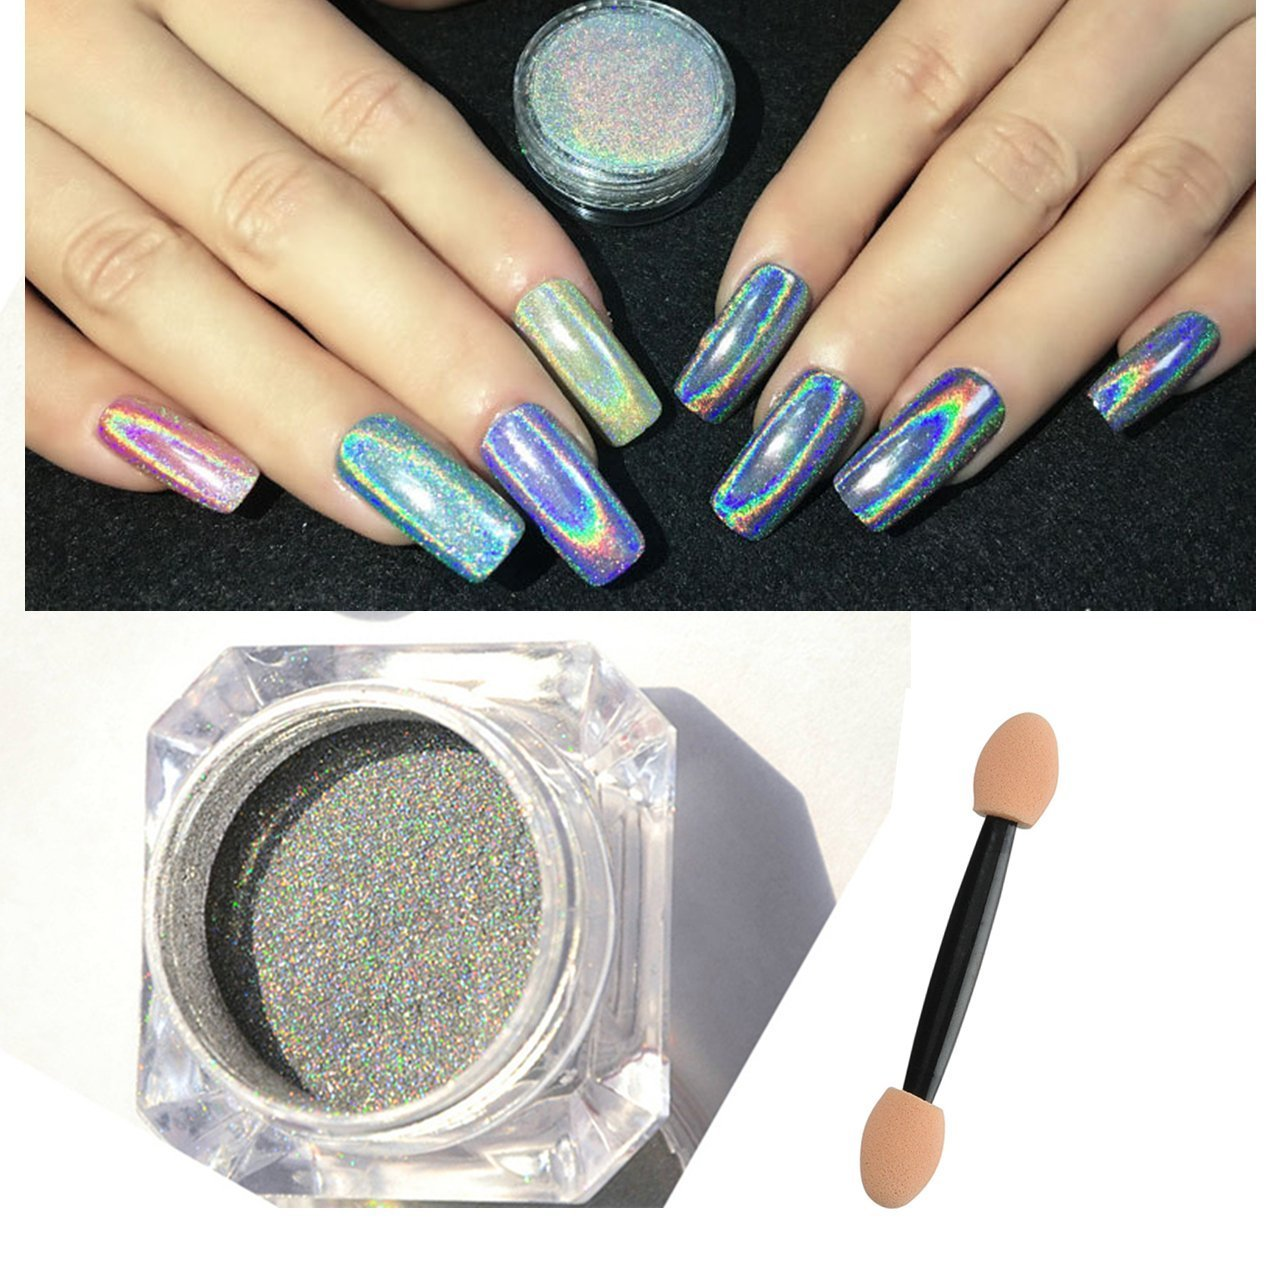 CCbeauty Rainbow Nail Powder Holographic Nail Art Glitter Powder Chrome Manicure Pigment Shimmer Color Changing Nail Art Tool